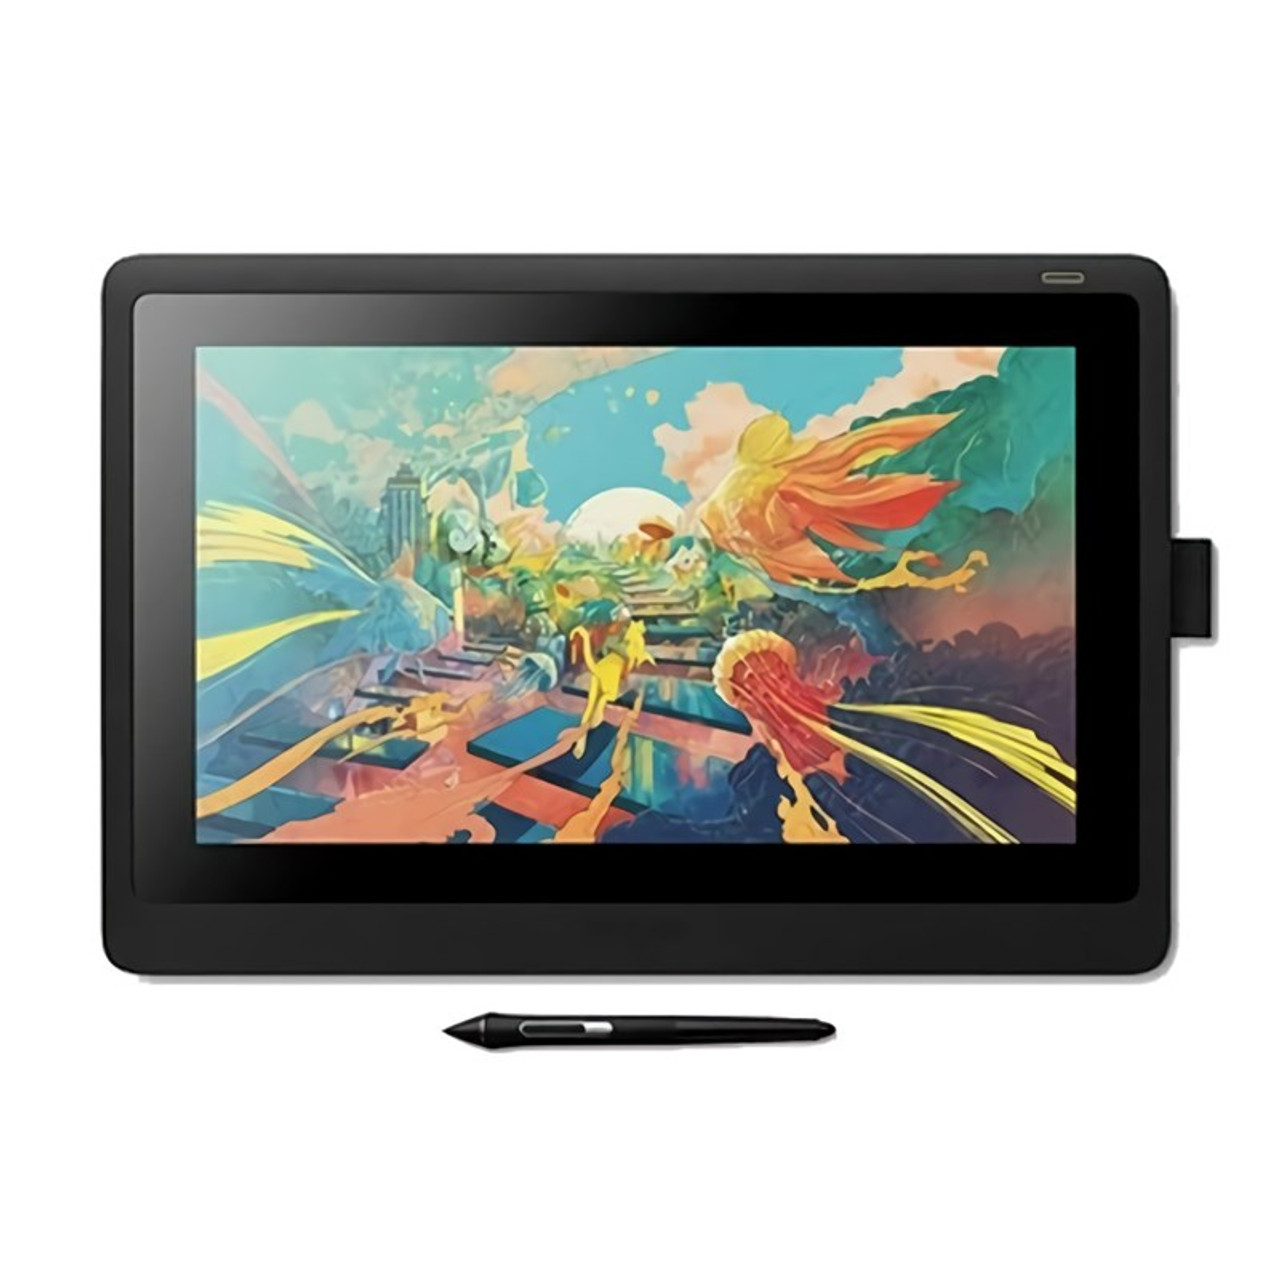 Image for Wacom Cintiq 16in Creative Pen Display CX Computer Superstore